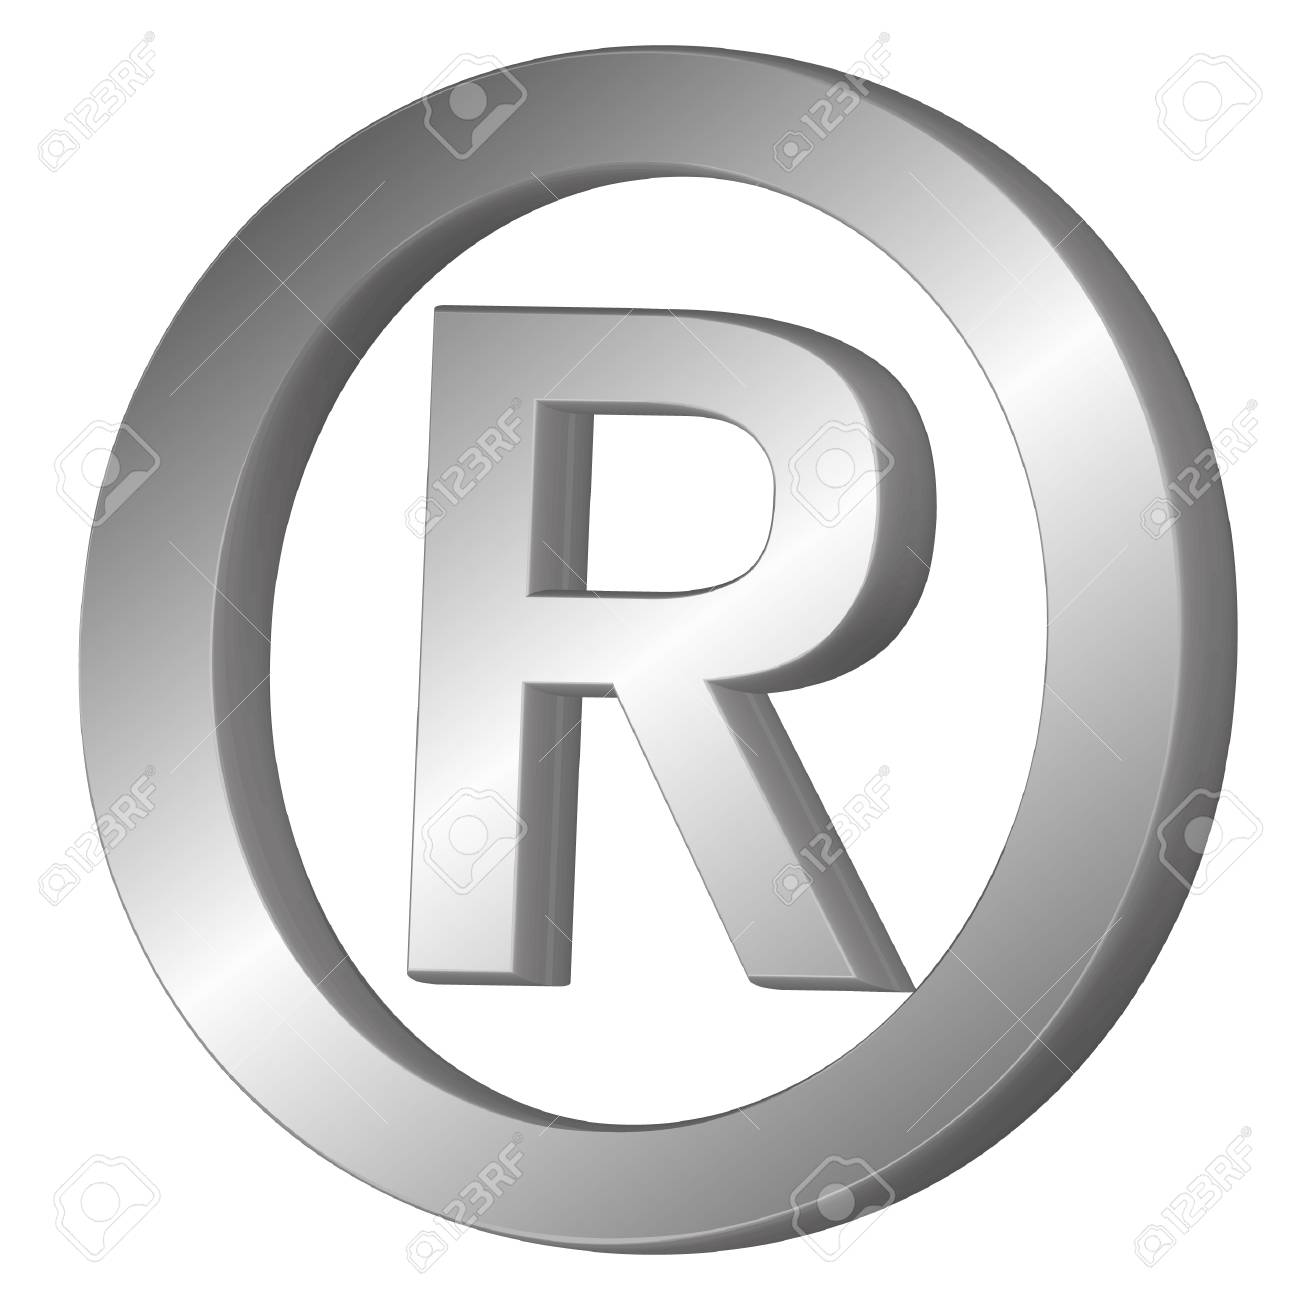 3d vector illustration of the registered trademark symbol royalty 3d vector illustration of the registered trademark symbol stock vector 8176690 biocorpaavc Gallery